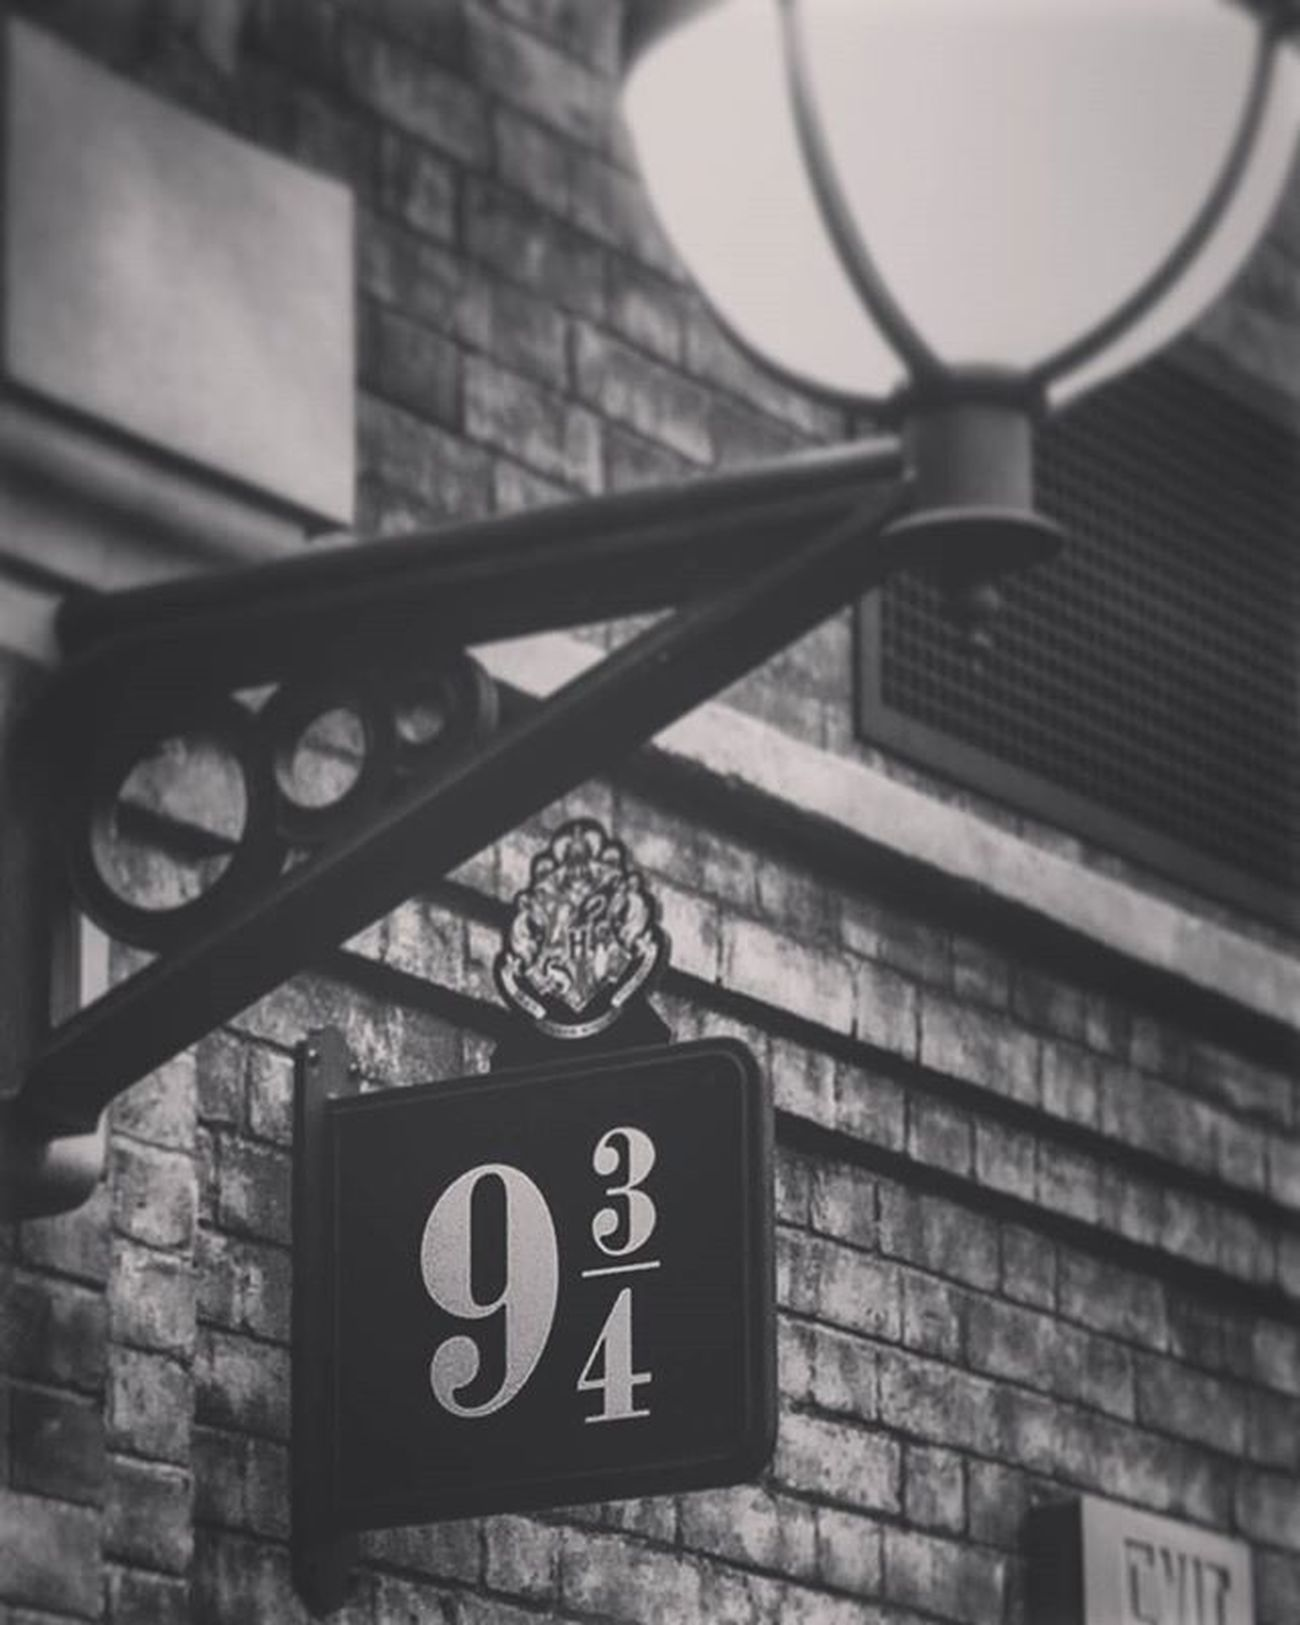 King's Cross Harrypotter Harrypotterforever Kingscross Hogwartsismyhome Hogwartstrain Kingscrossstation Kingscross9and3quarters Photographer Butterbeer Thewizardingworldofharrypotter Theboywholived Vscophotography Ninethreequarters UniversalMoments Blackandwhiteisworththefight